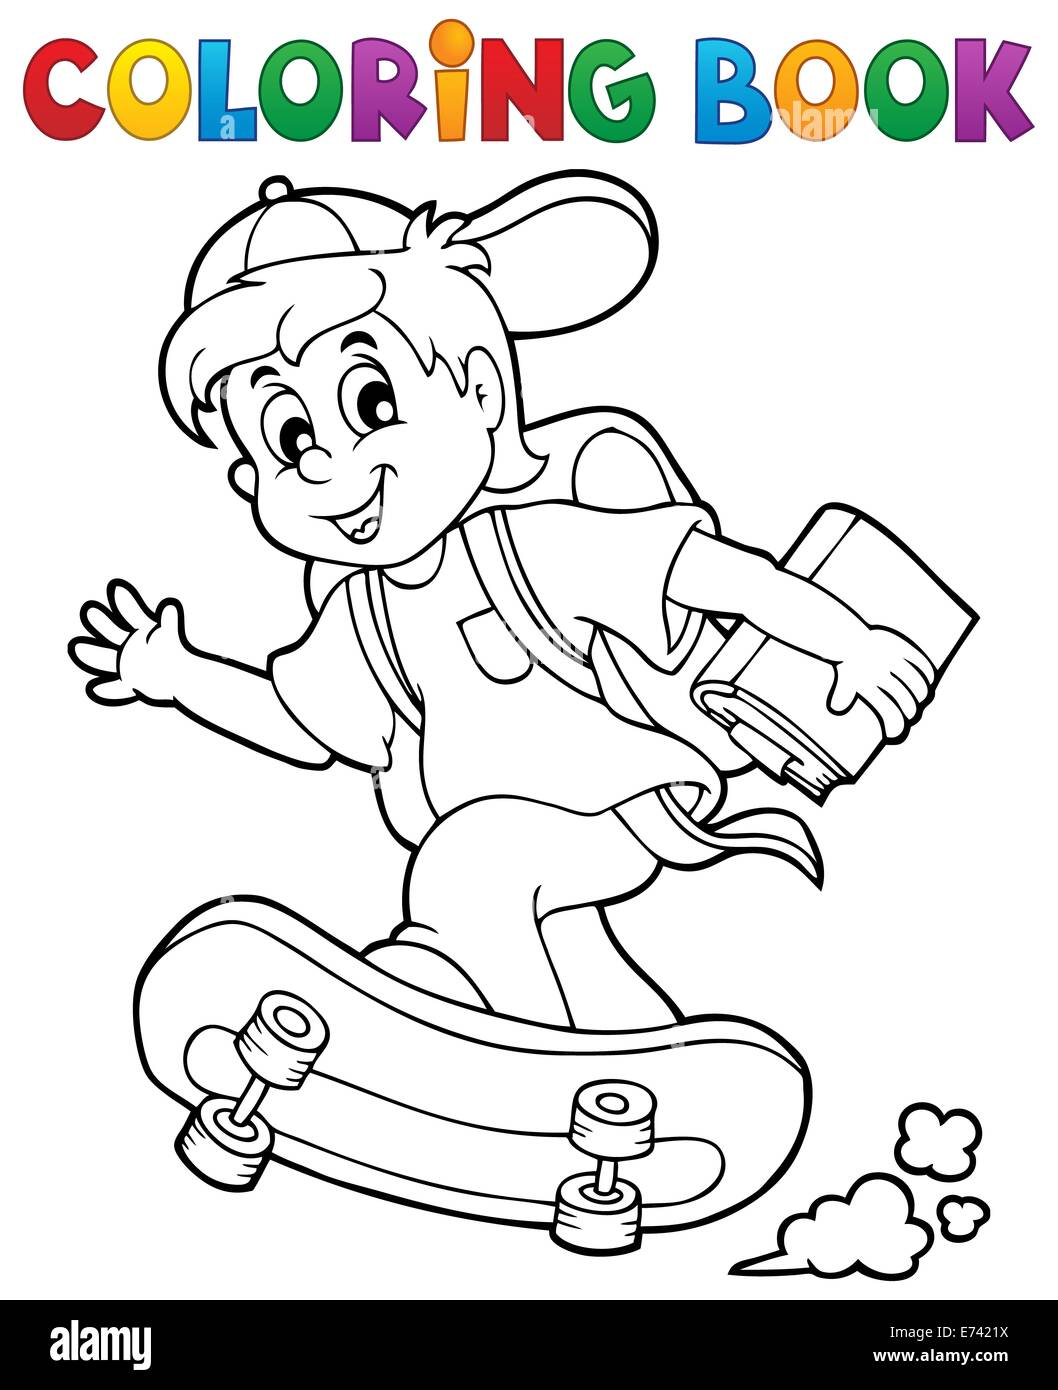 Coloring book school - Coloring Book School Boy Theme 1 Picture Illustration